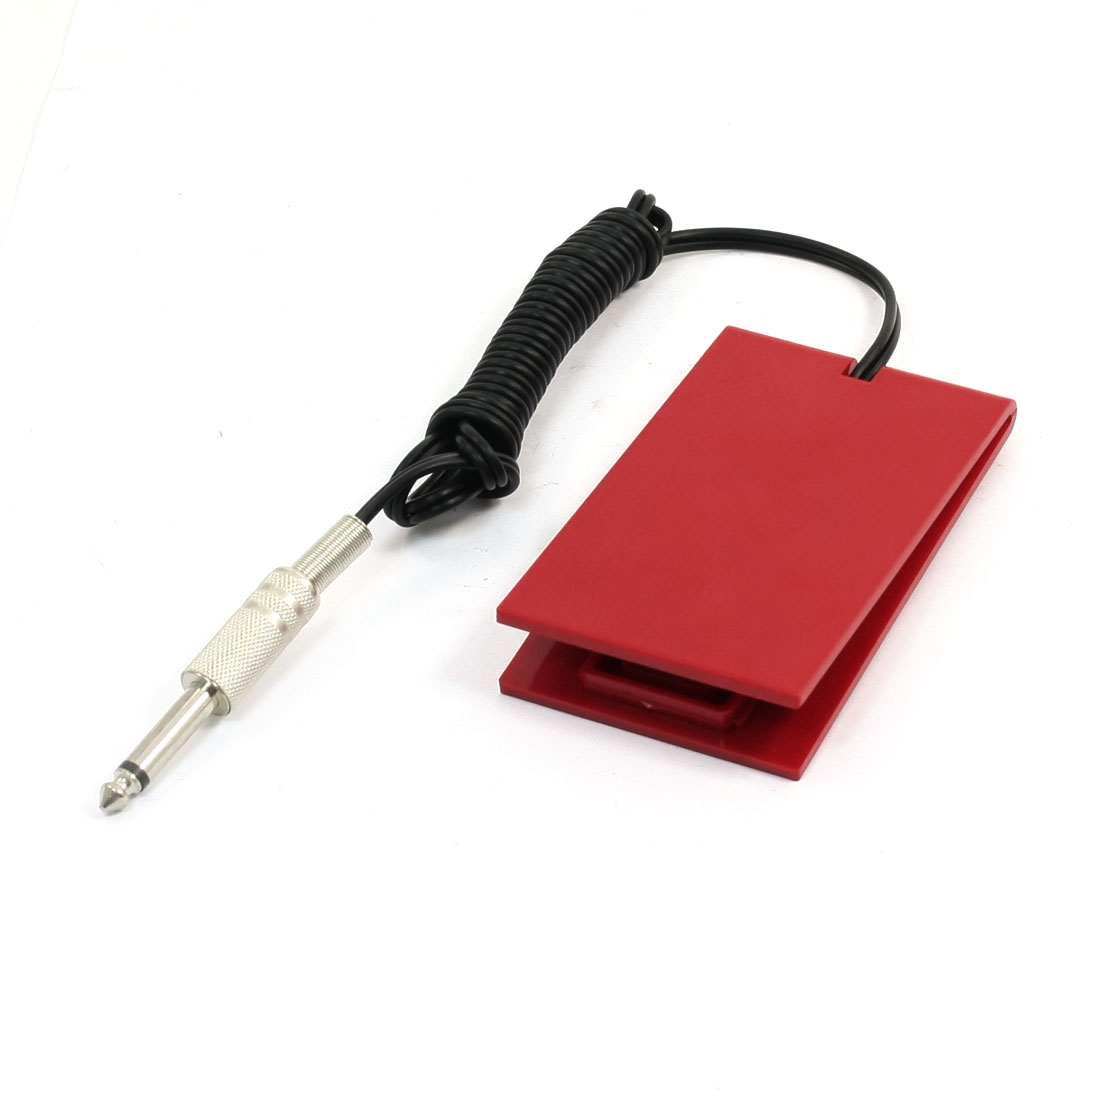 Red Acrylic Tattoo Footswitch Foot Pedal for Tattoo Power Supply